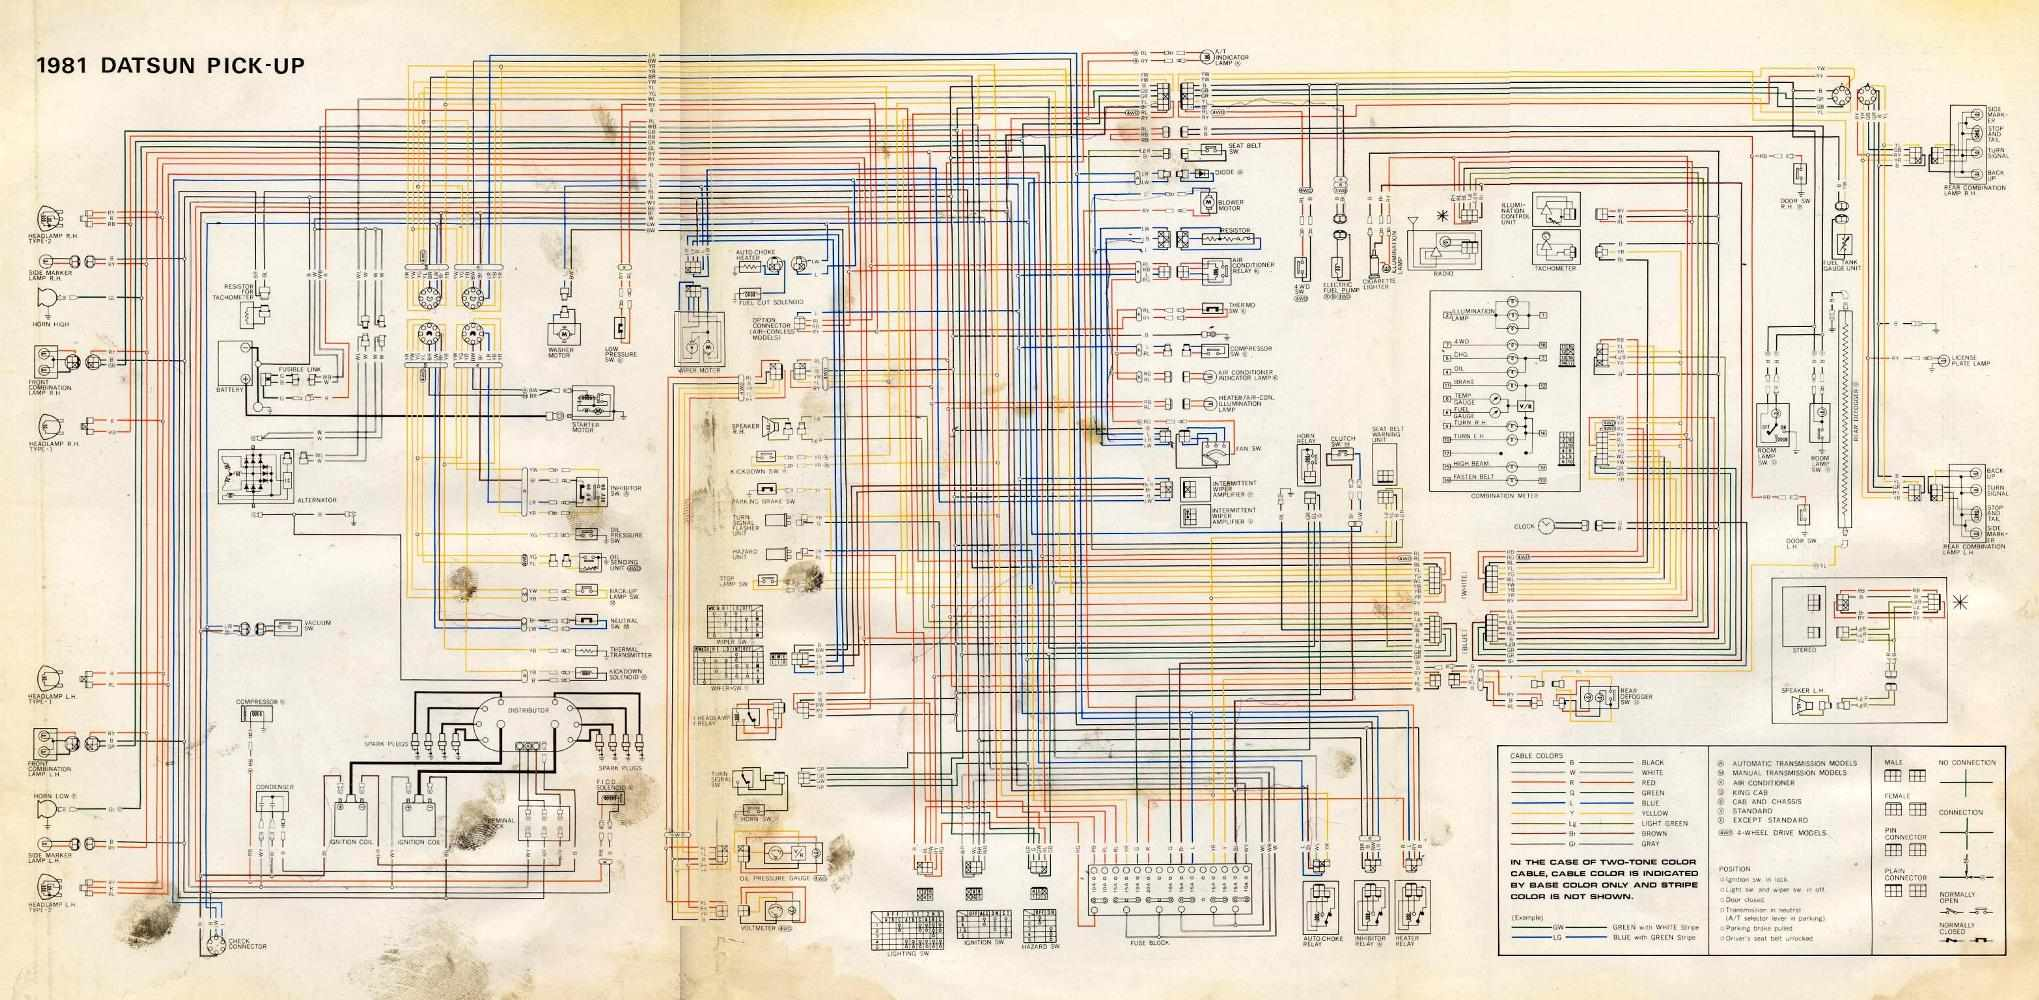 Detailfs together with Los 12 Motores Que Cambiaron El Mundo likewise 1931 Ford Model A 4 as well 1949 Ford Wiring Diagram Wiring Diagrams additionally Flathead. on 1940 ford firing order